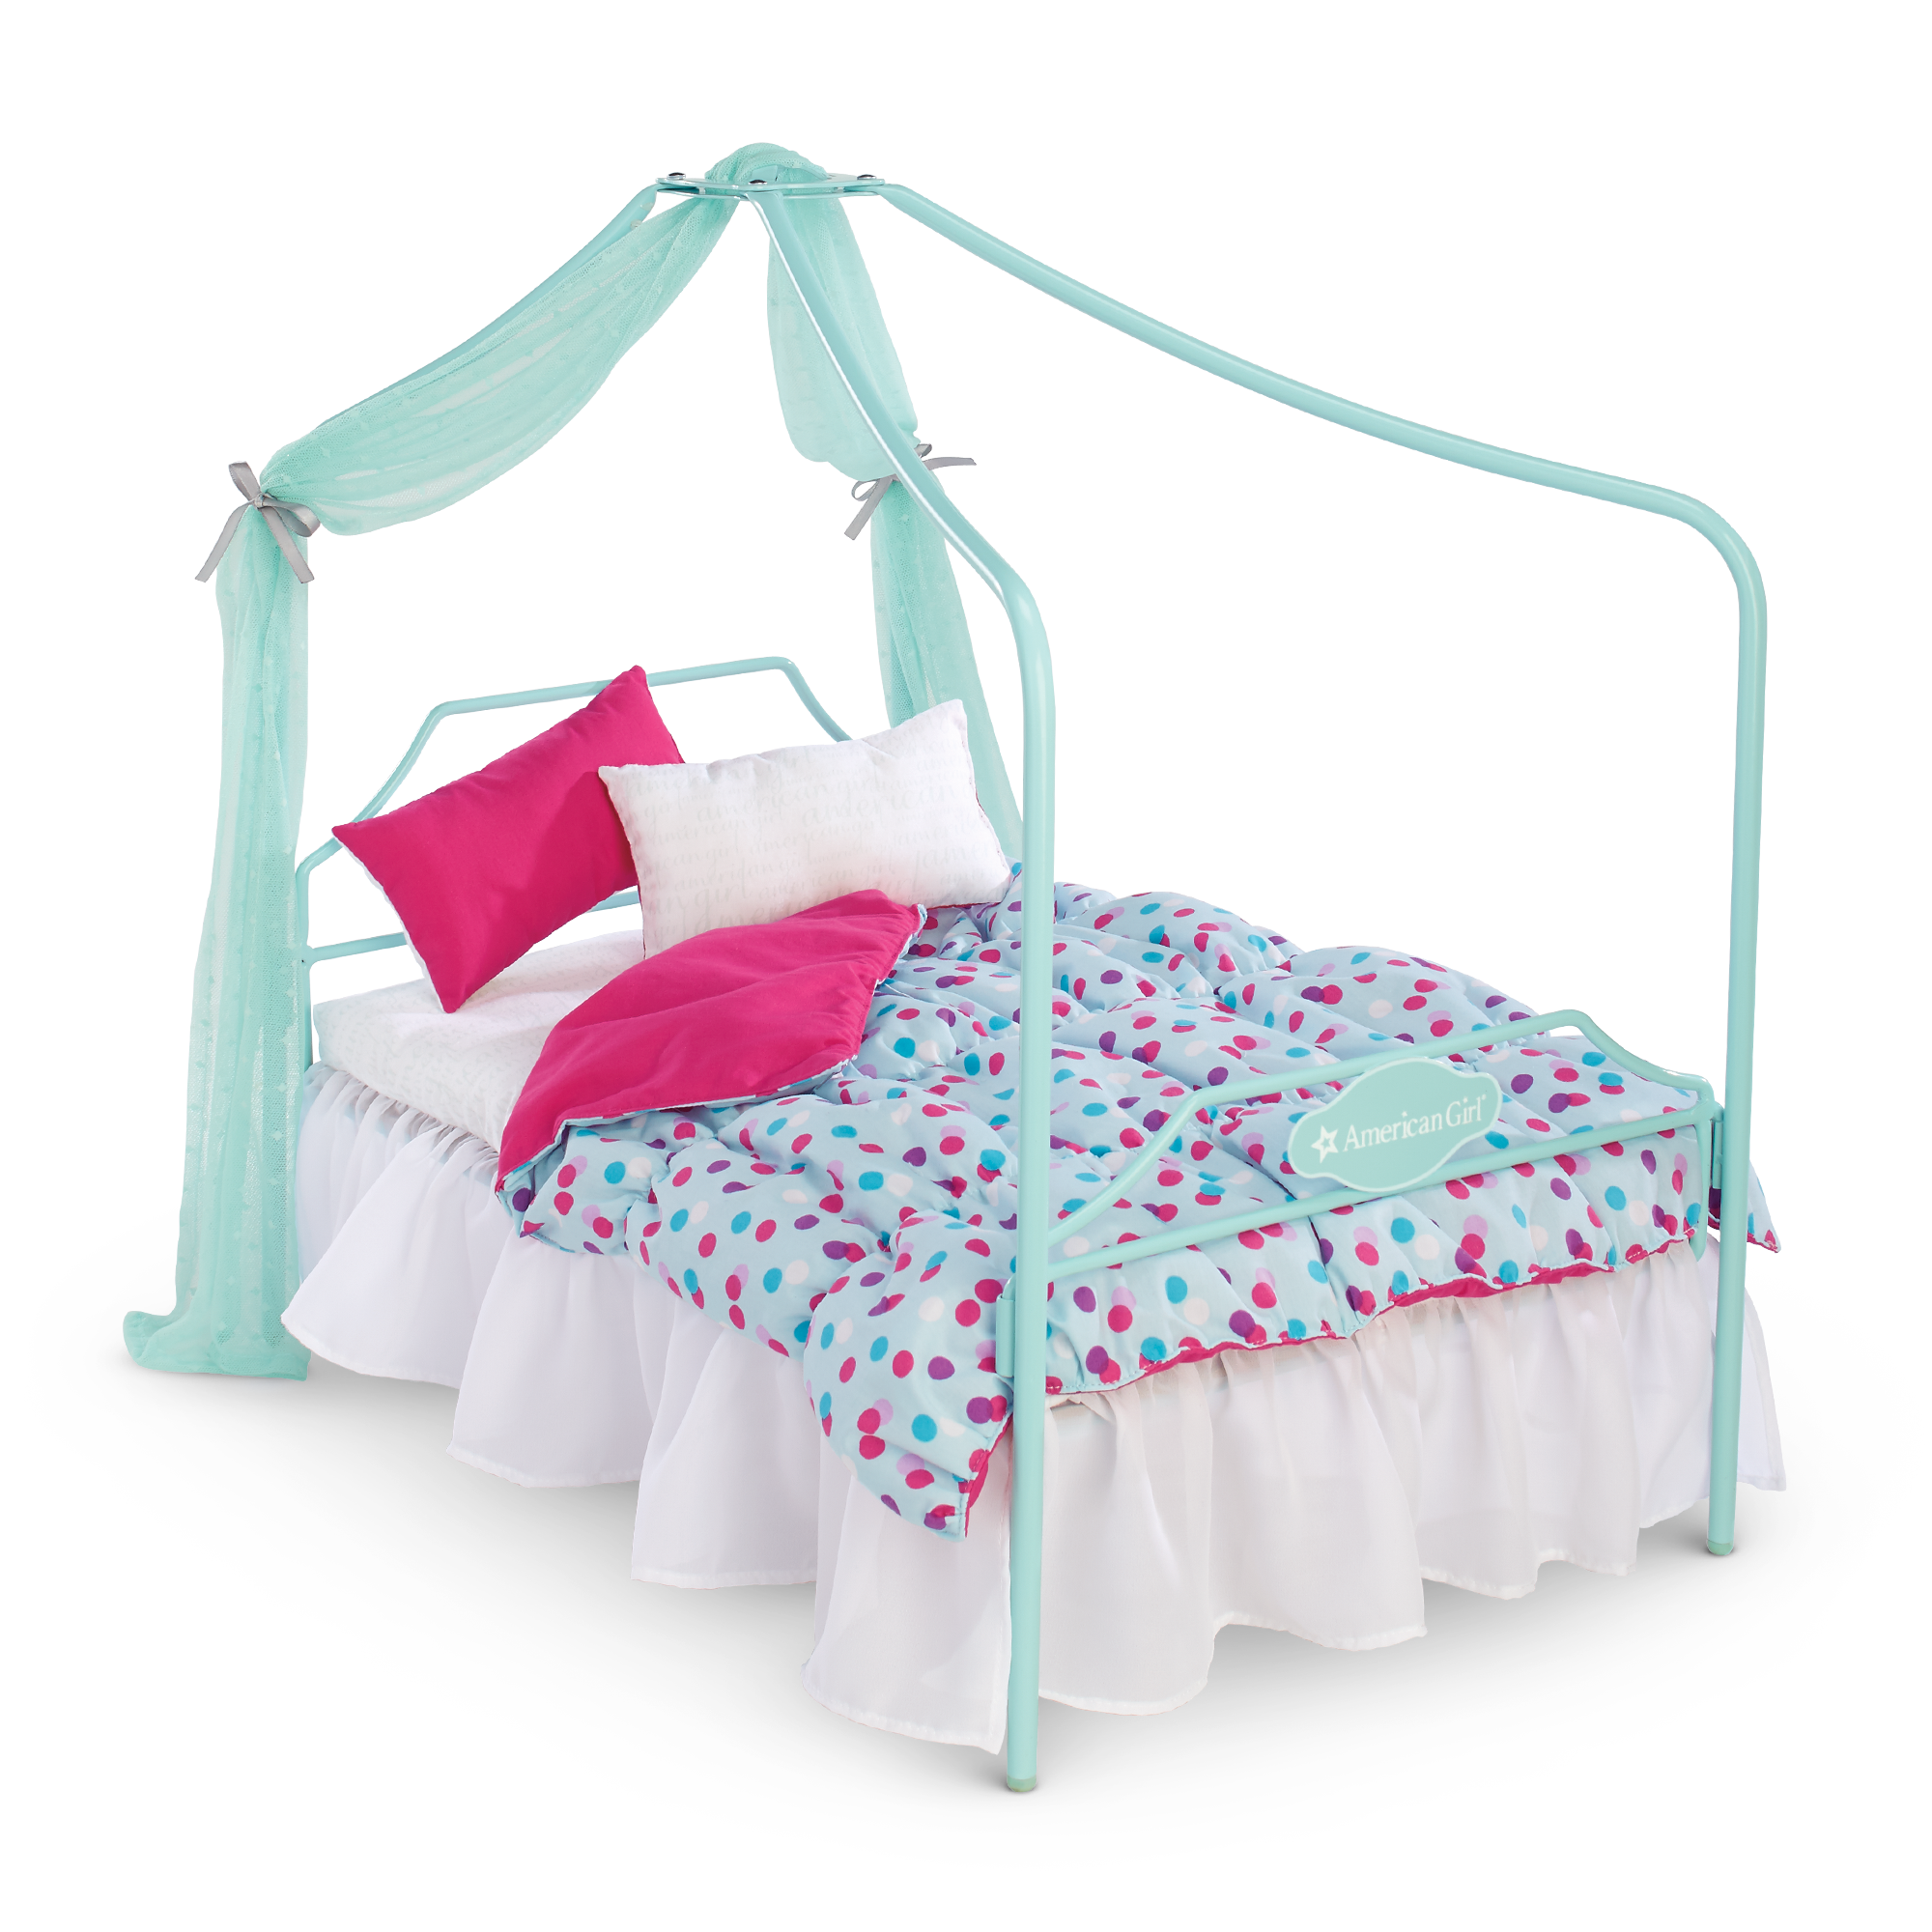 Canopy Bed And Bedding Set.